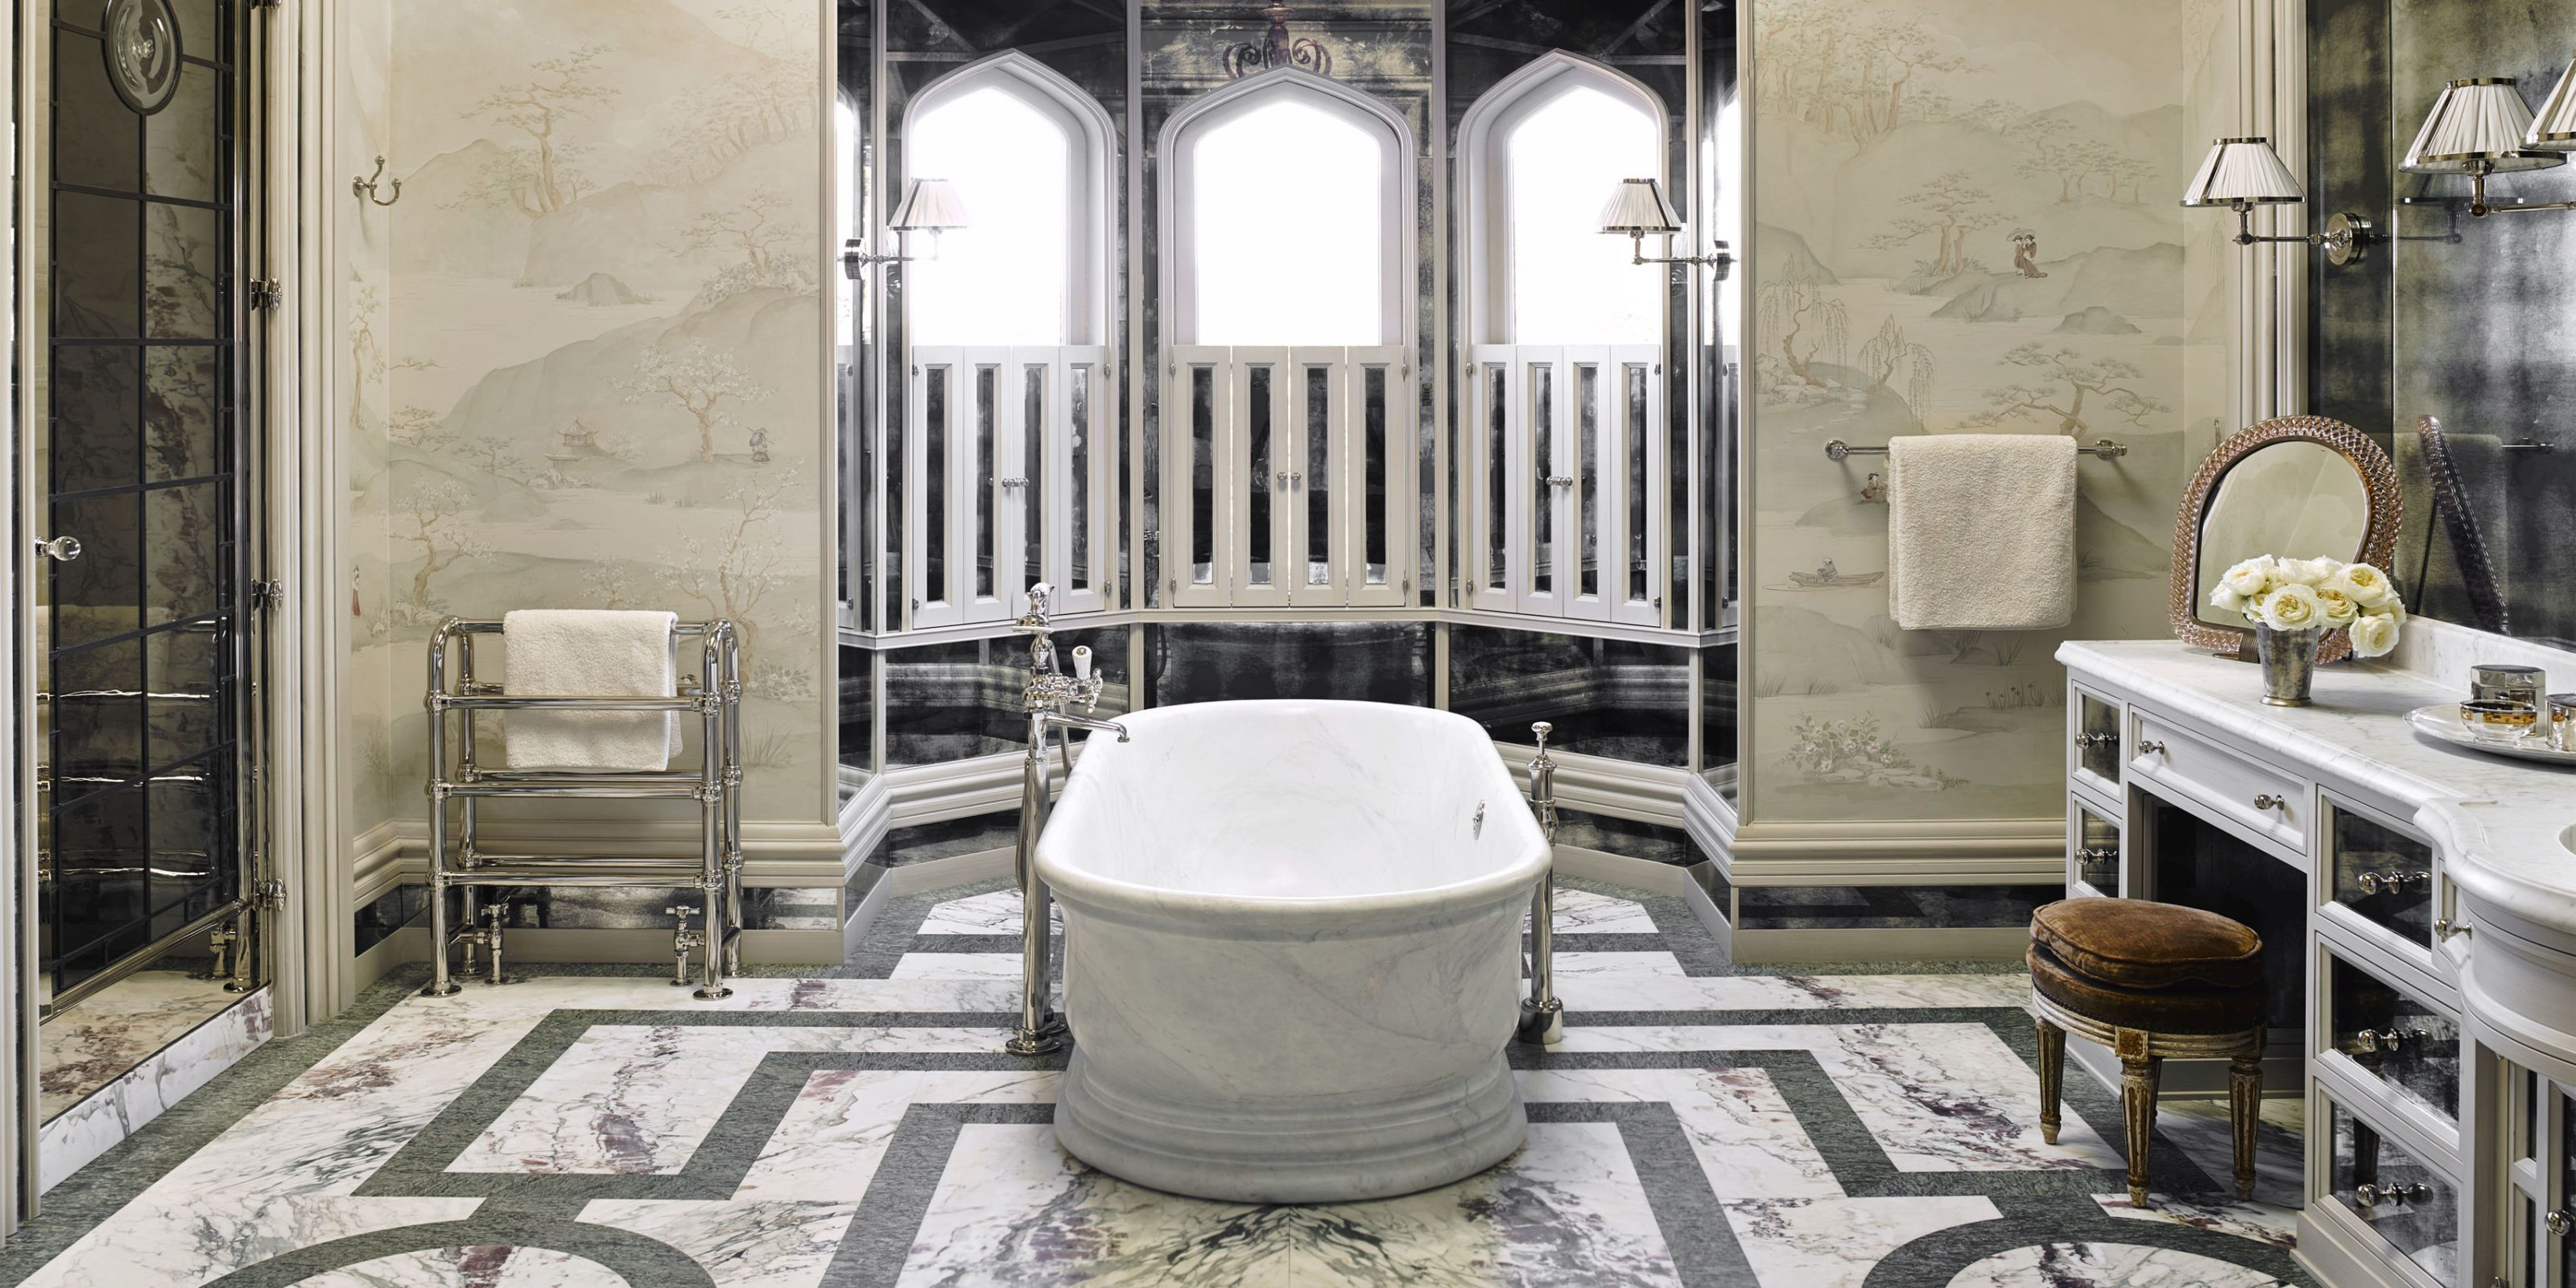 20 Luxurious Bathtubs To Soak In